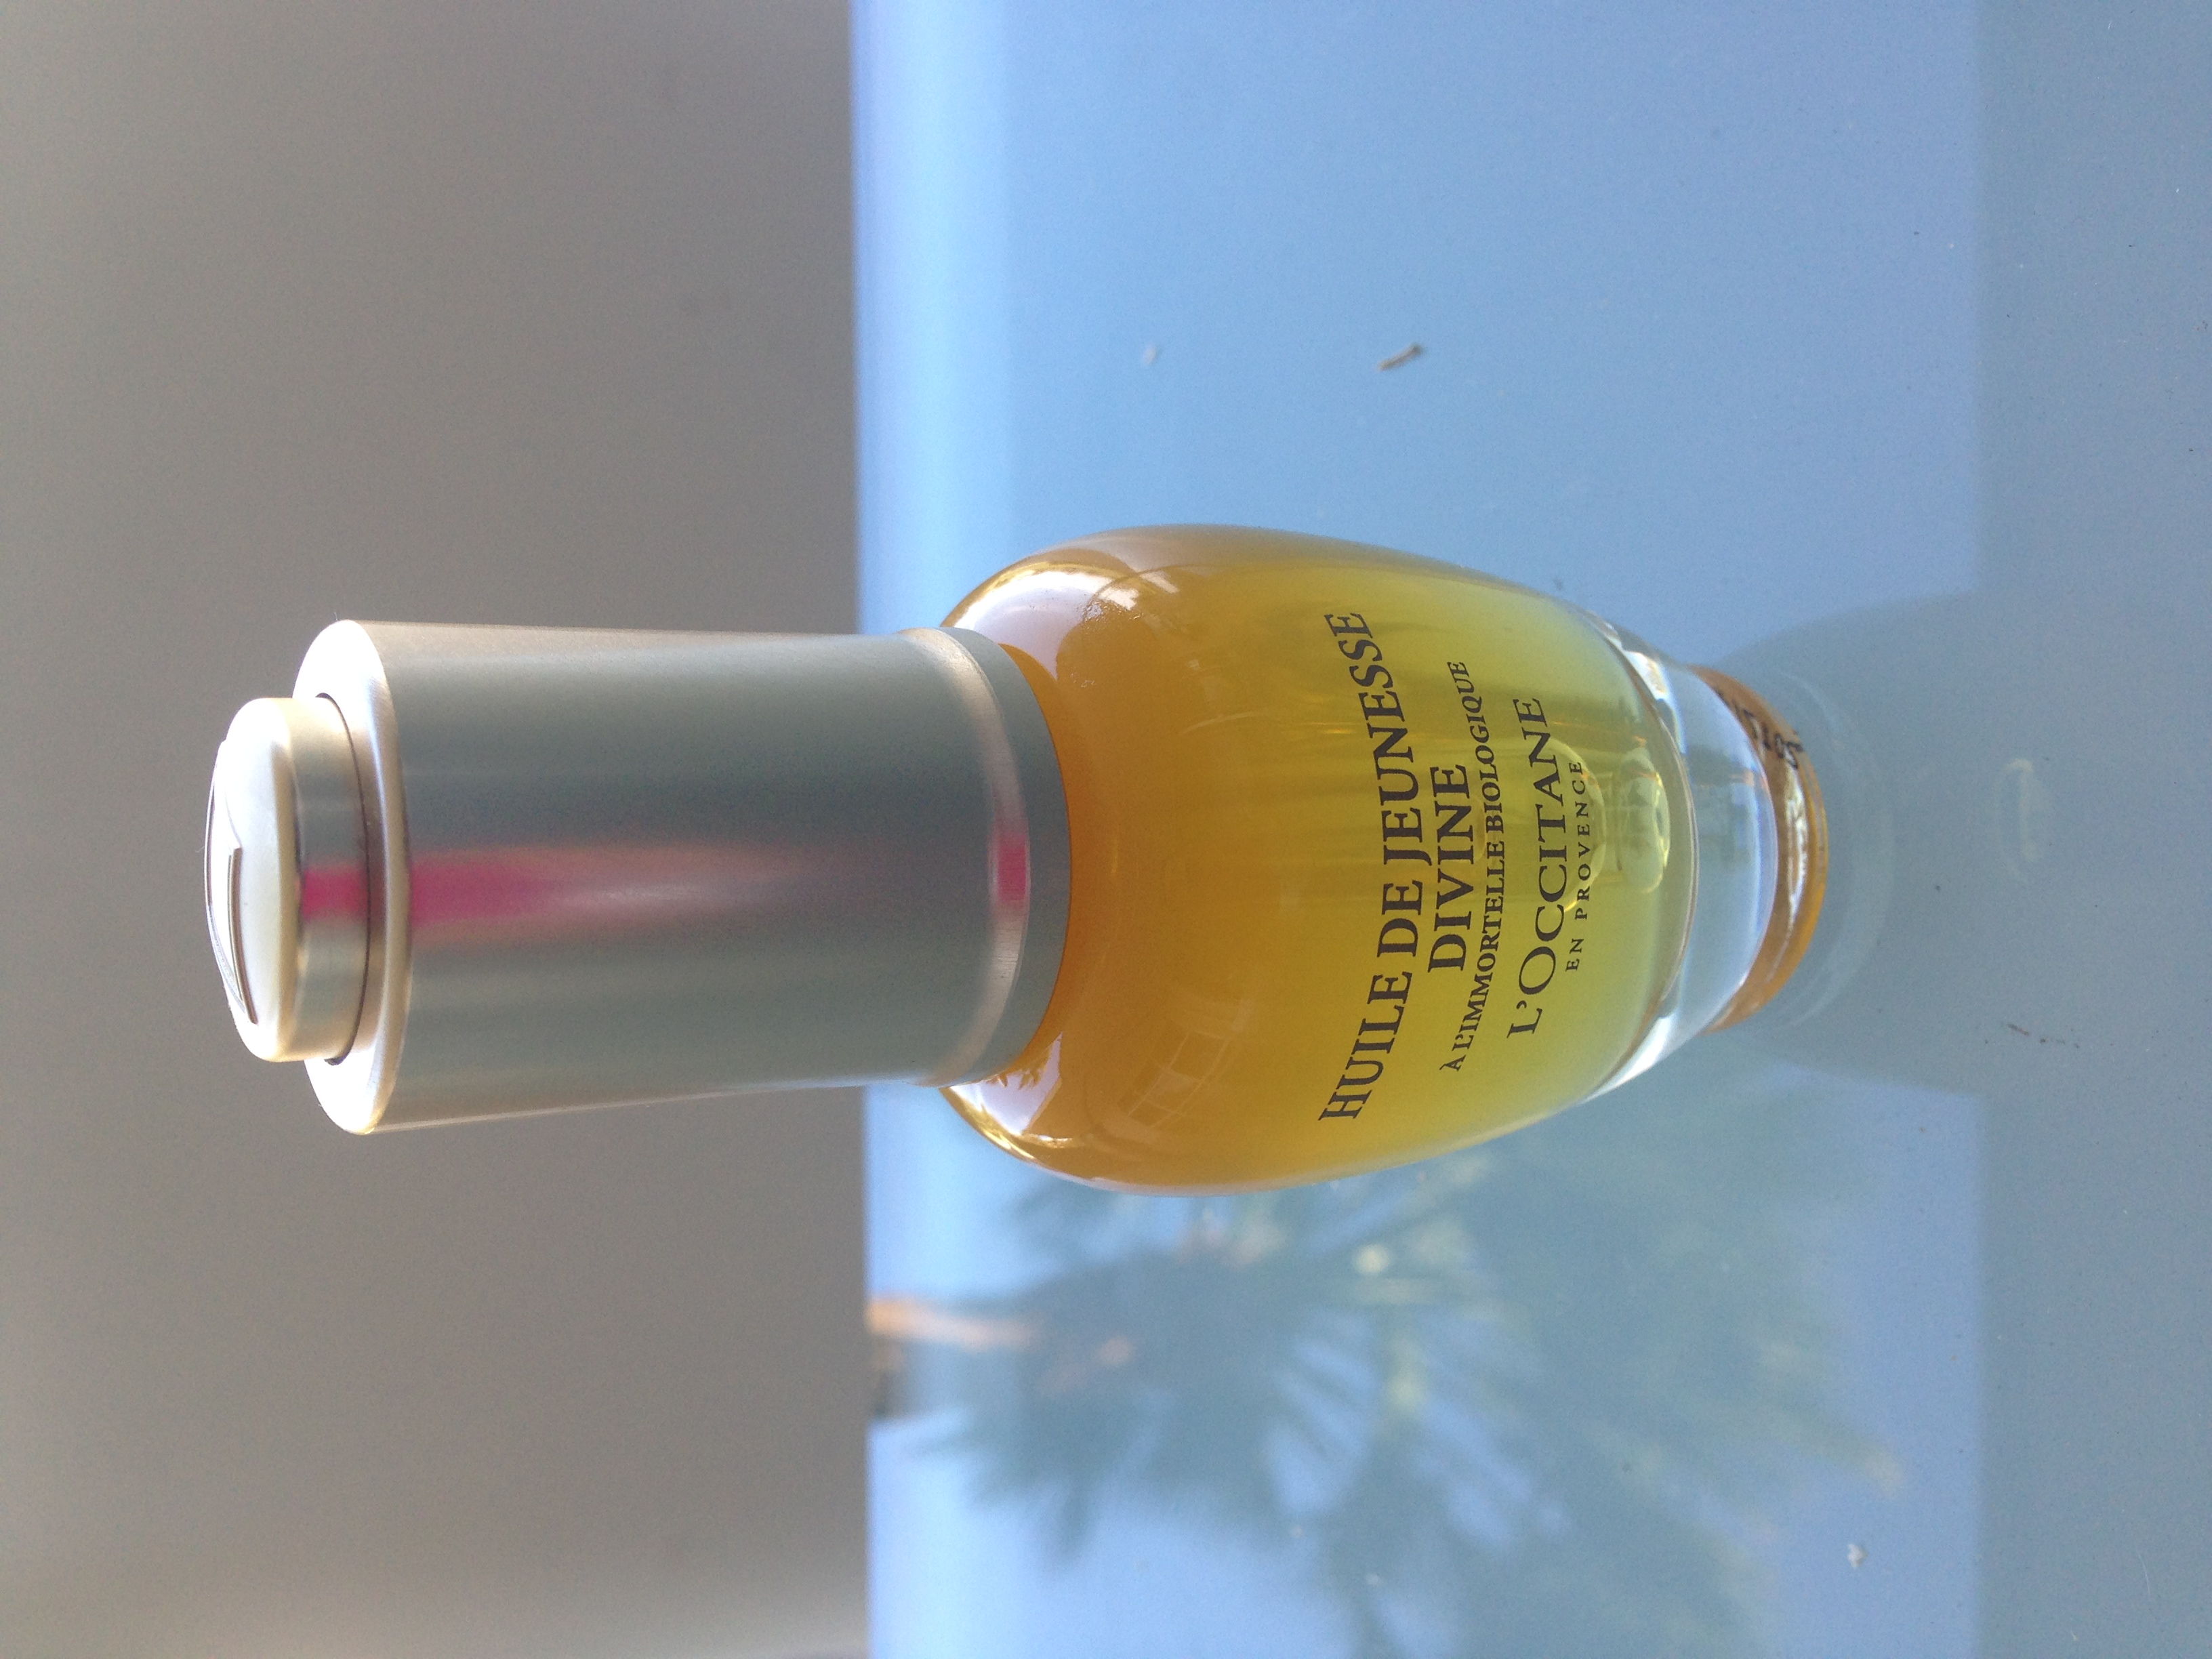 L'Occitane Divine Youth Oil, $96 . The oil promotes microcirculation that stimulates the skin.